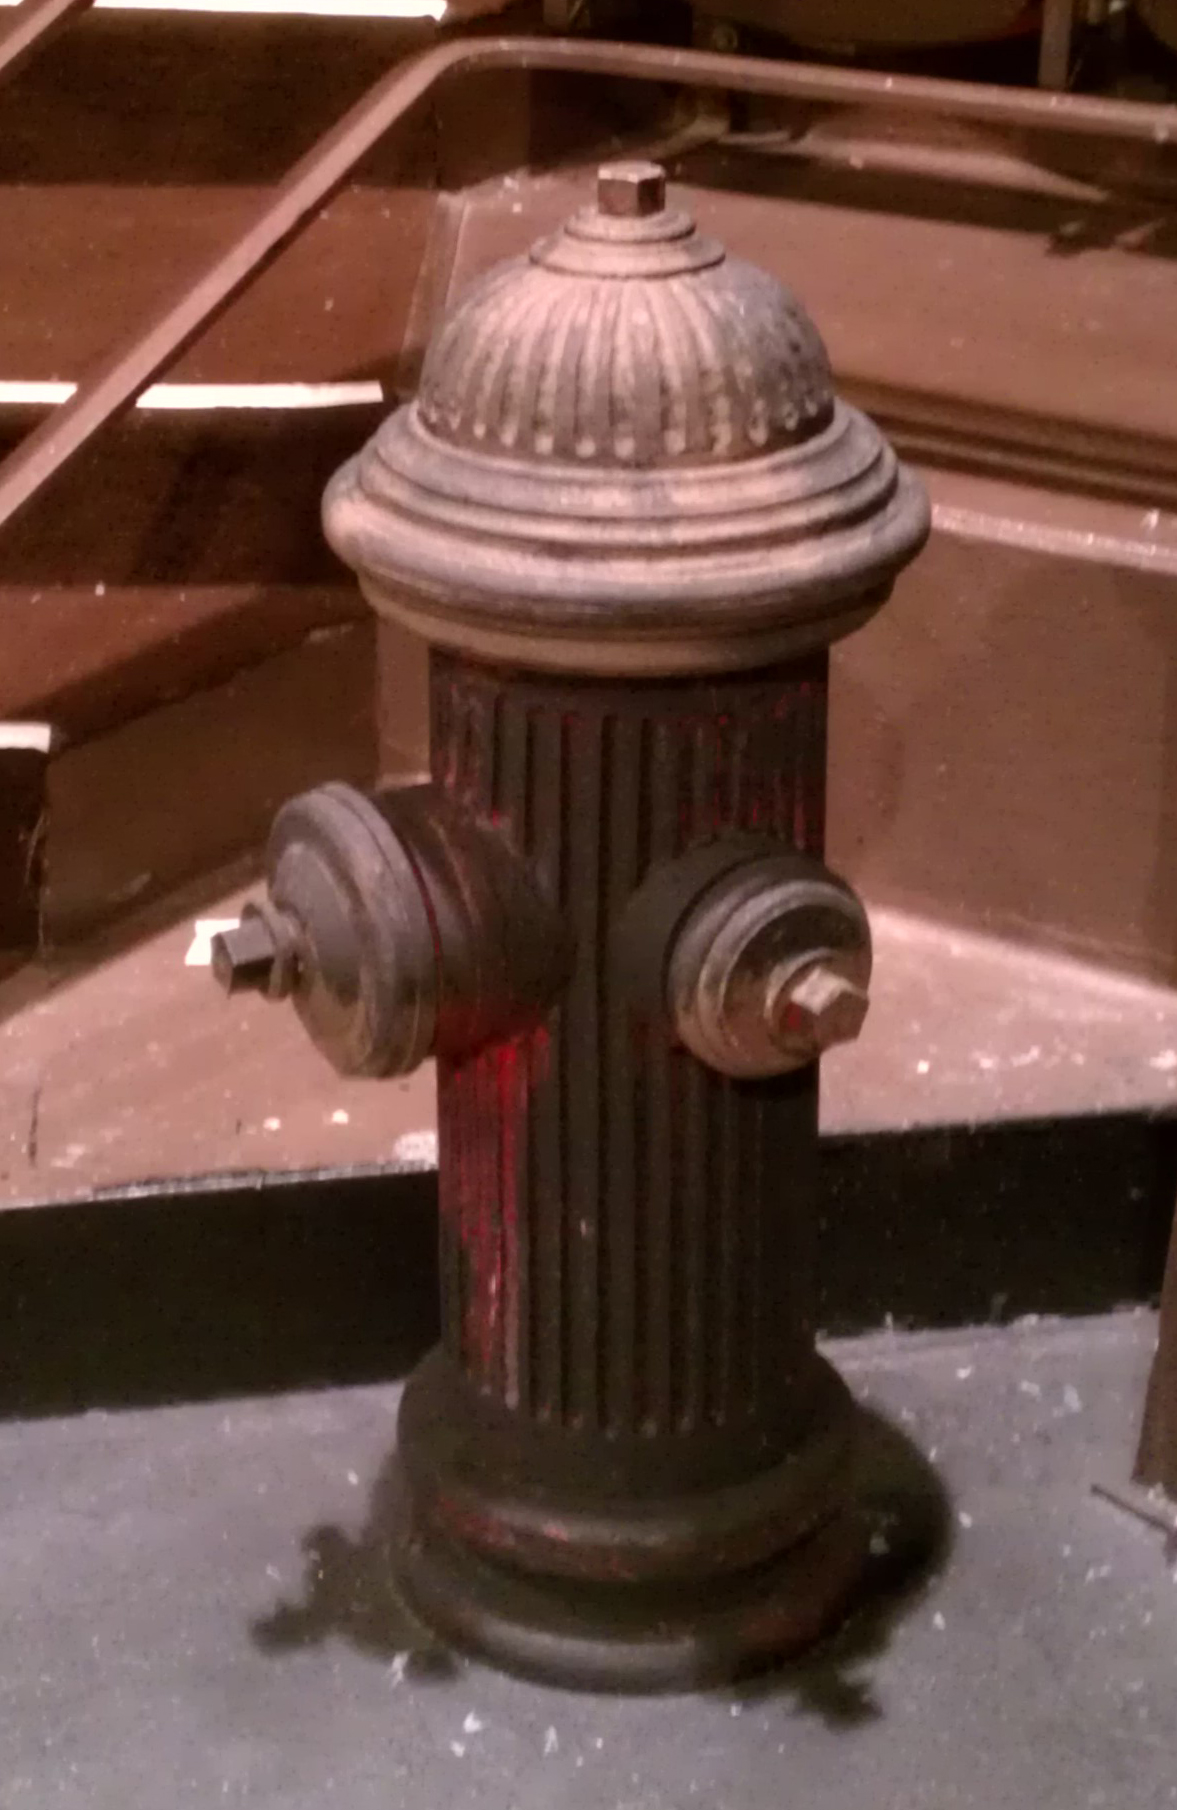 The finished fire hydrant onstage under work lights.